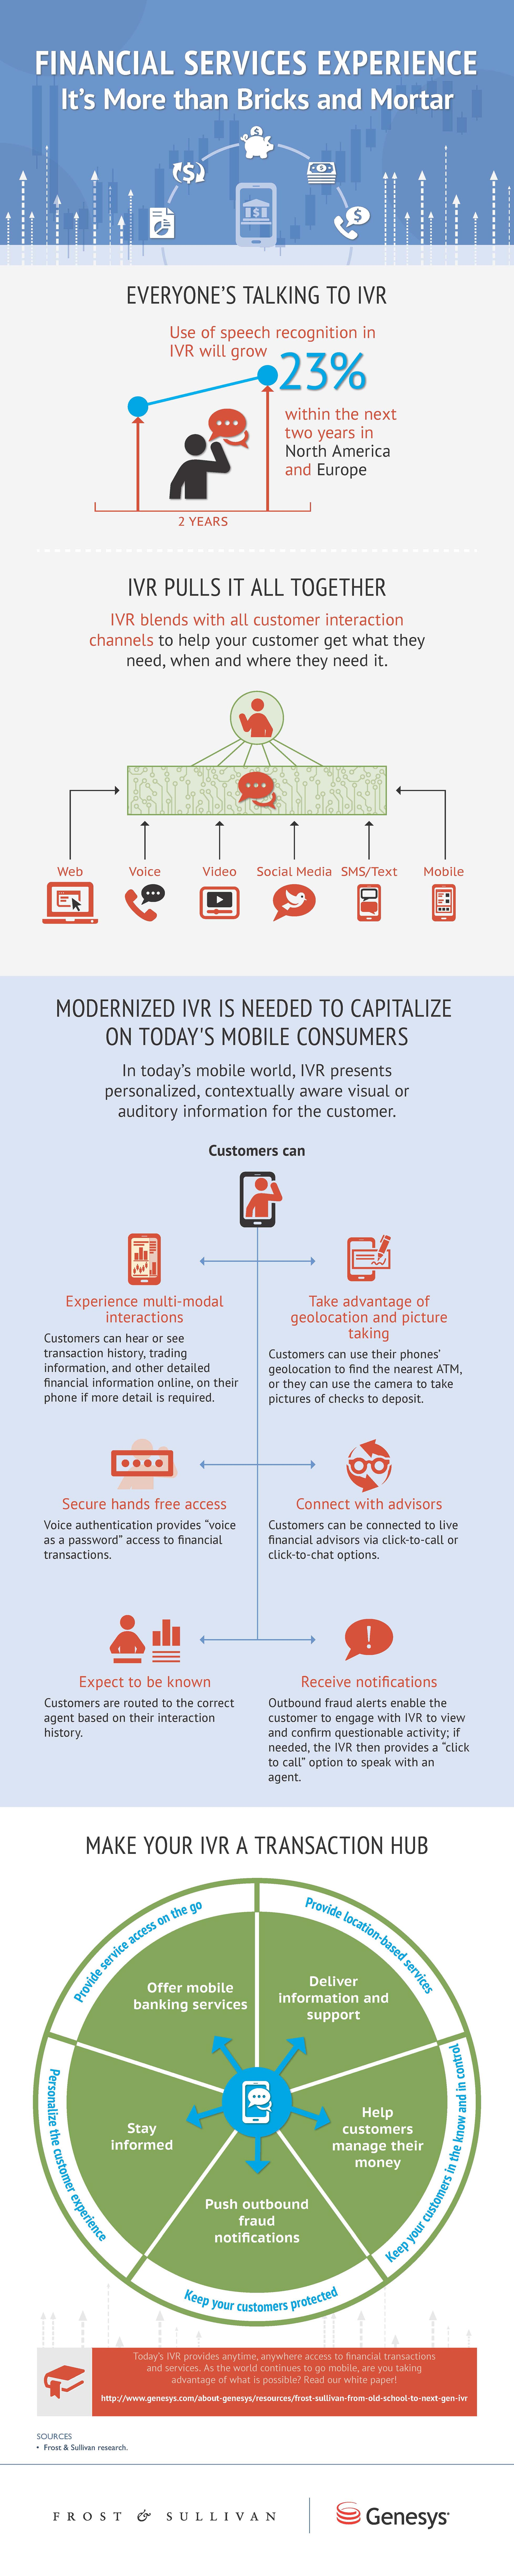 Genesys-Frost-and-Sullivan-Financial-Services-Experience-Infographic-IVR